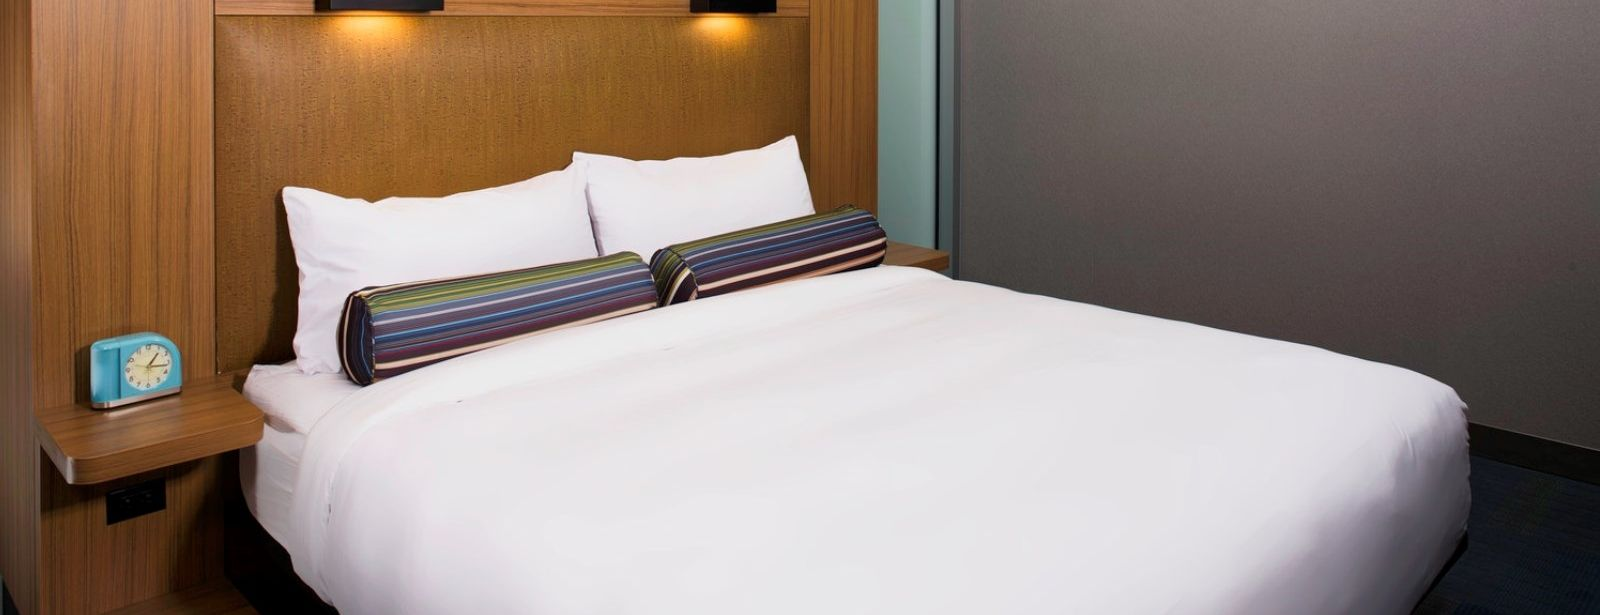 Cleveland Accommodations - Aloft King Room